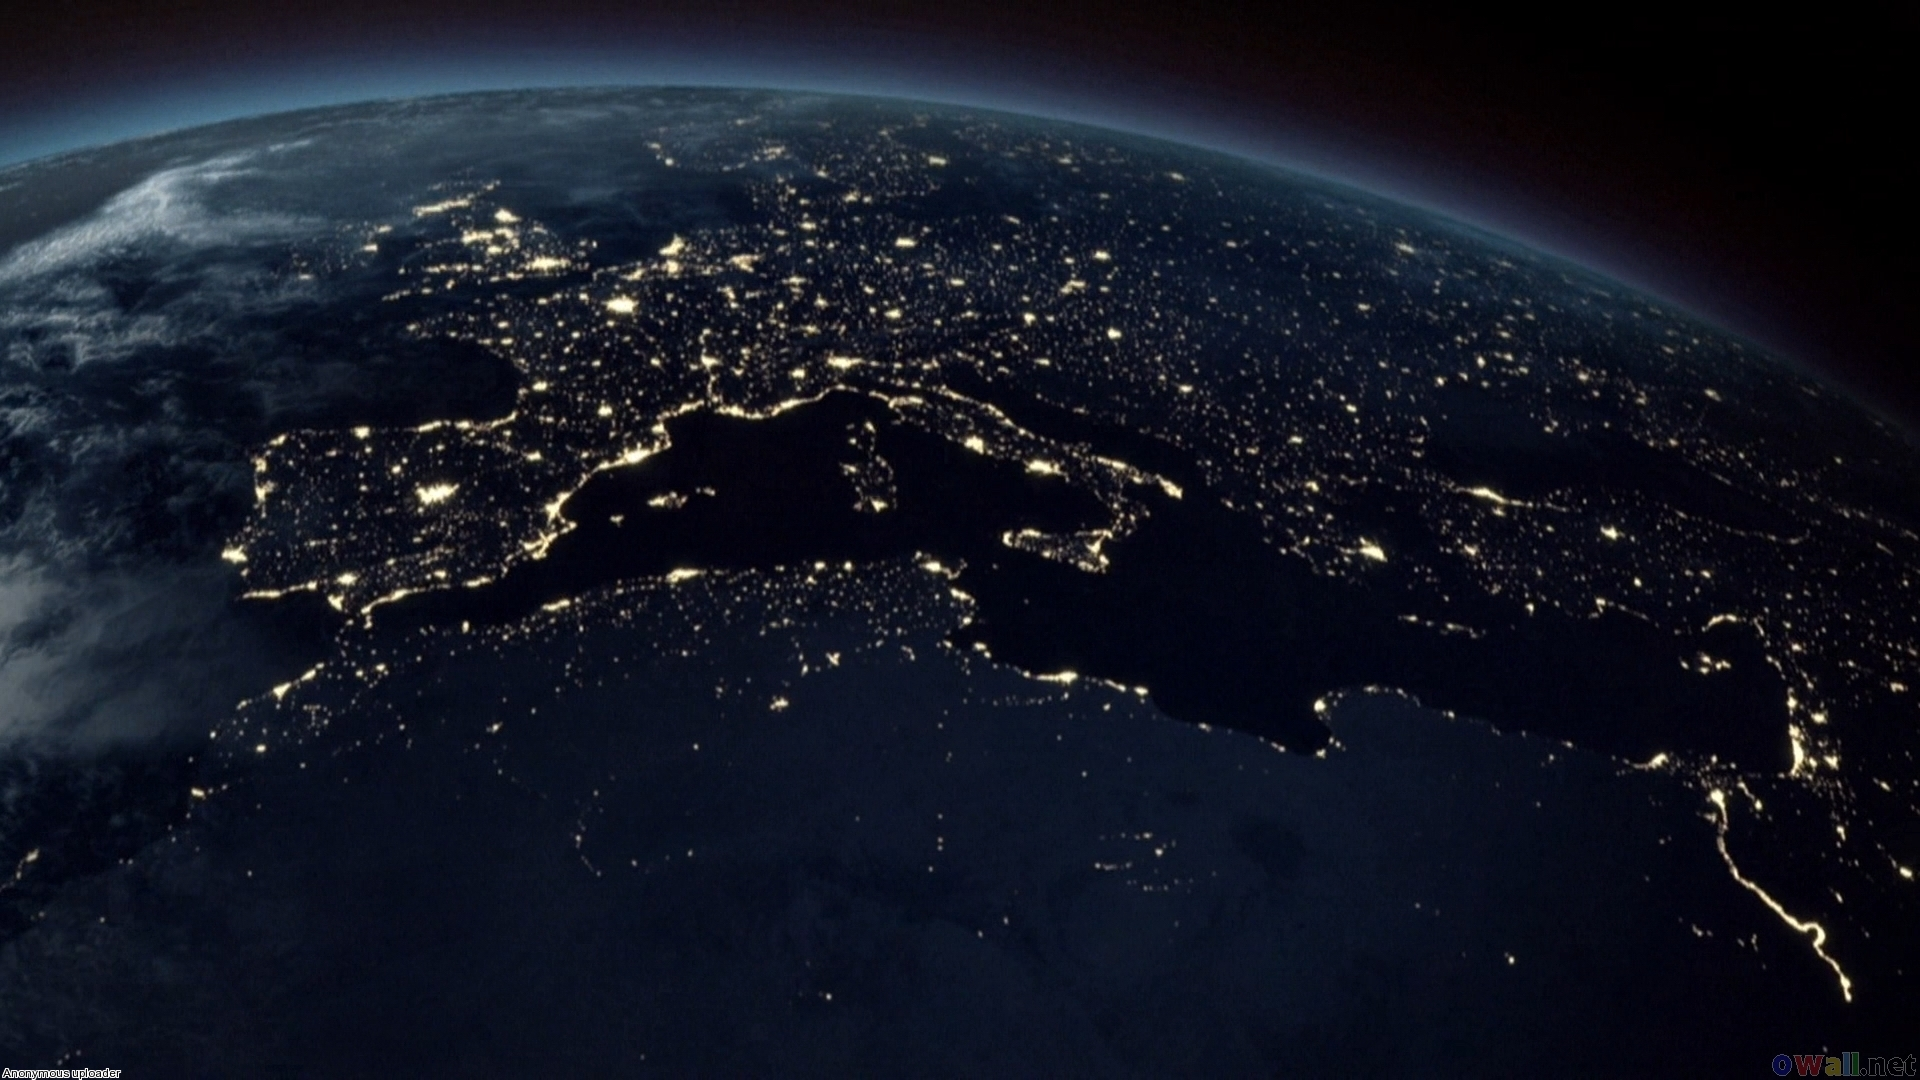 Earth from space hd wallpaper wallpapersafari - Earth hd images from space ...